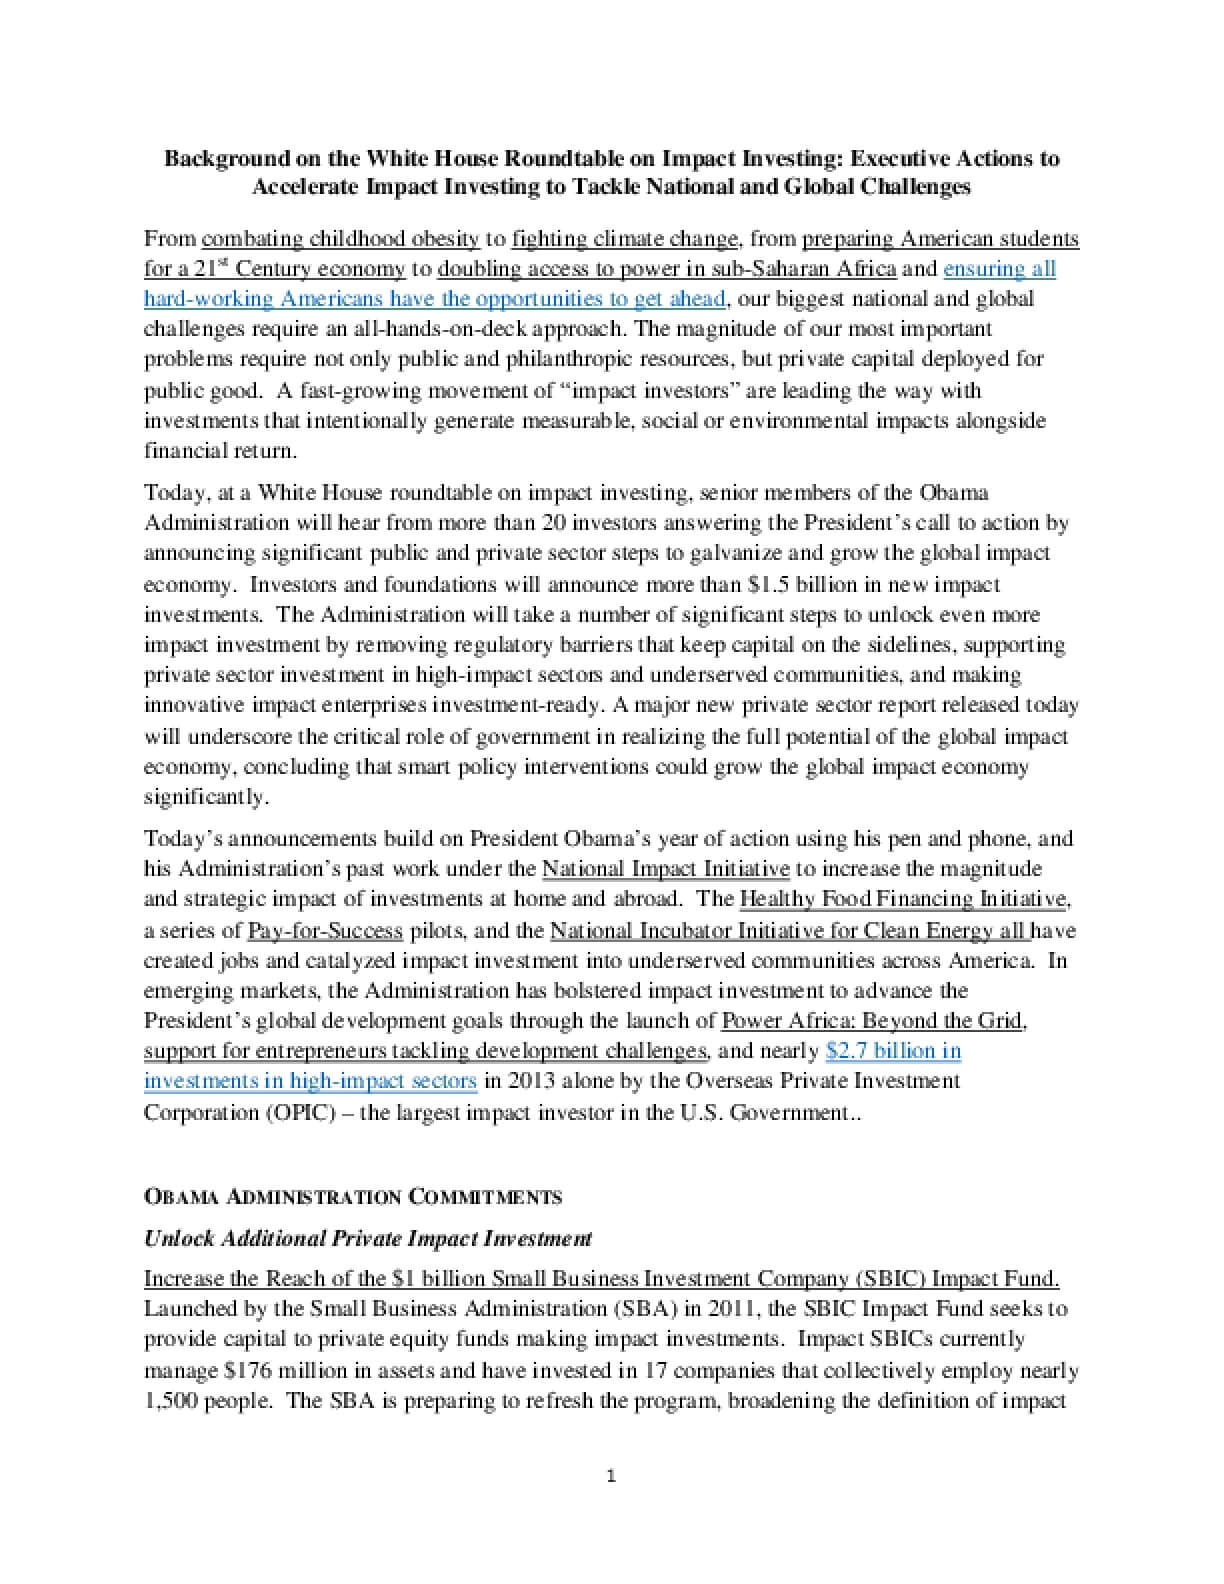 Background on the White House Roundtable on  Impact Investing: Executive Actions to  Accelerate Impact Investing to Tackle National and Global Challenges